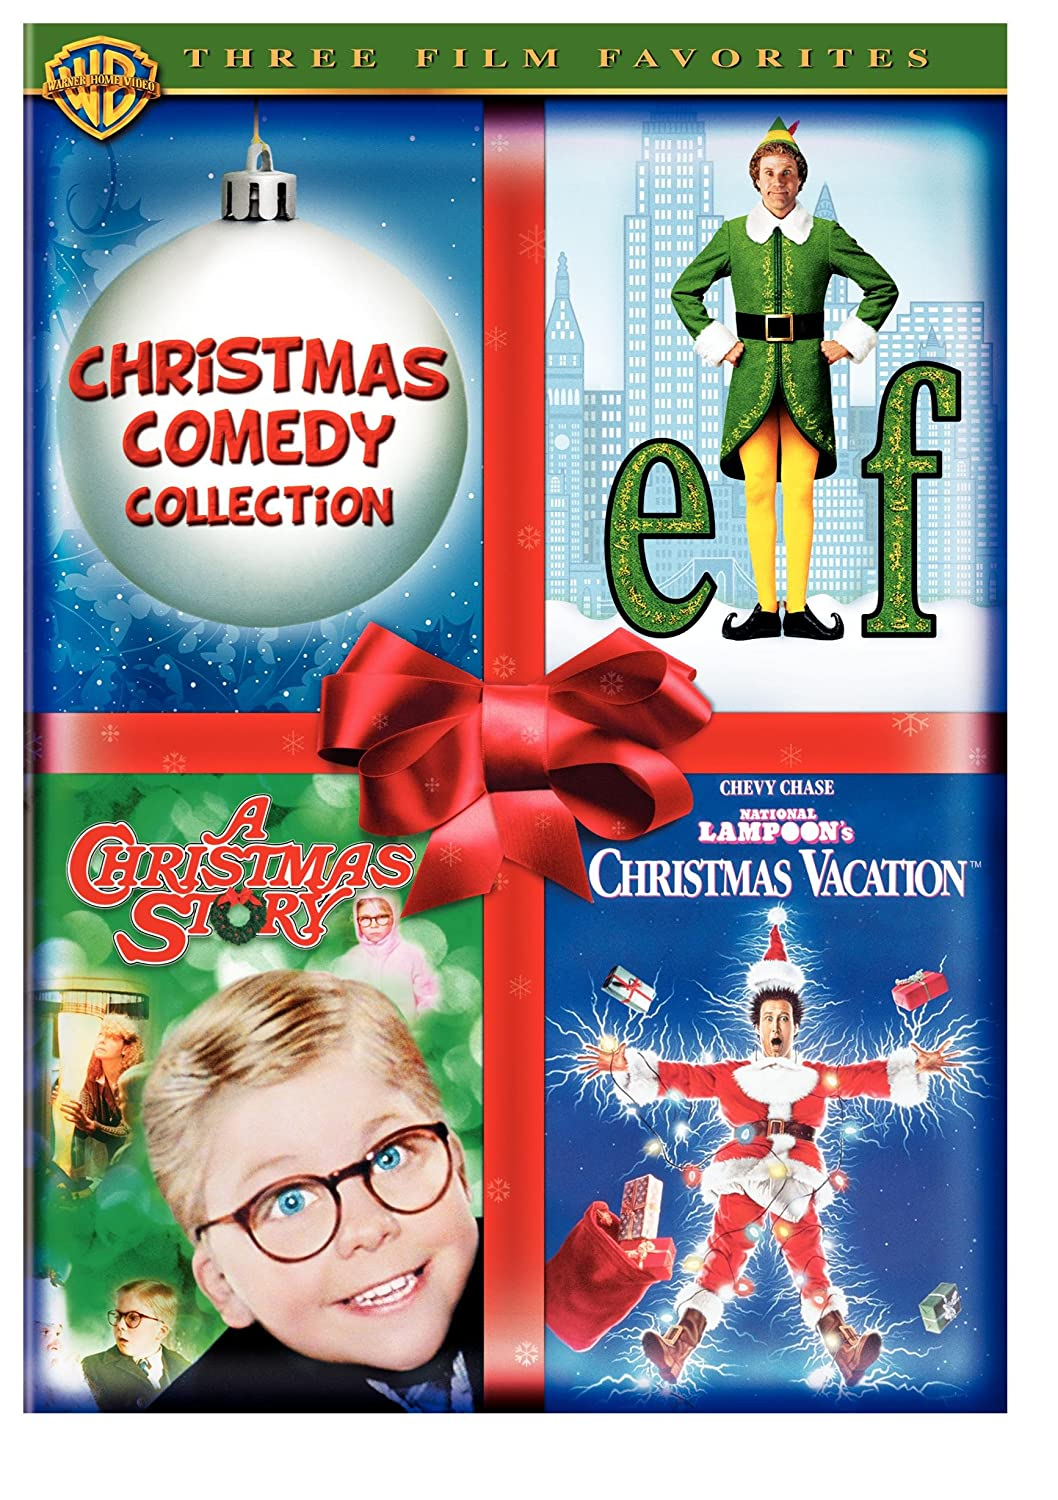 Extremely Easy Couponing: Get 3 Christmas Comedy DVDs On